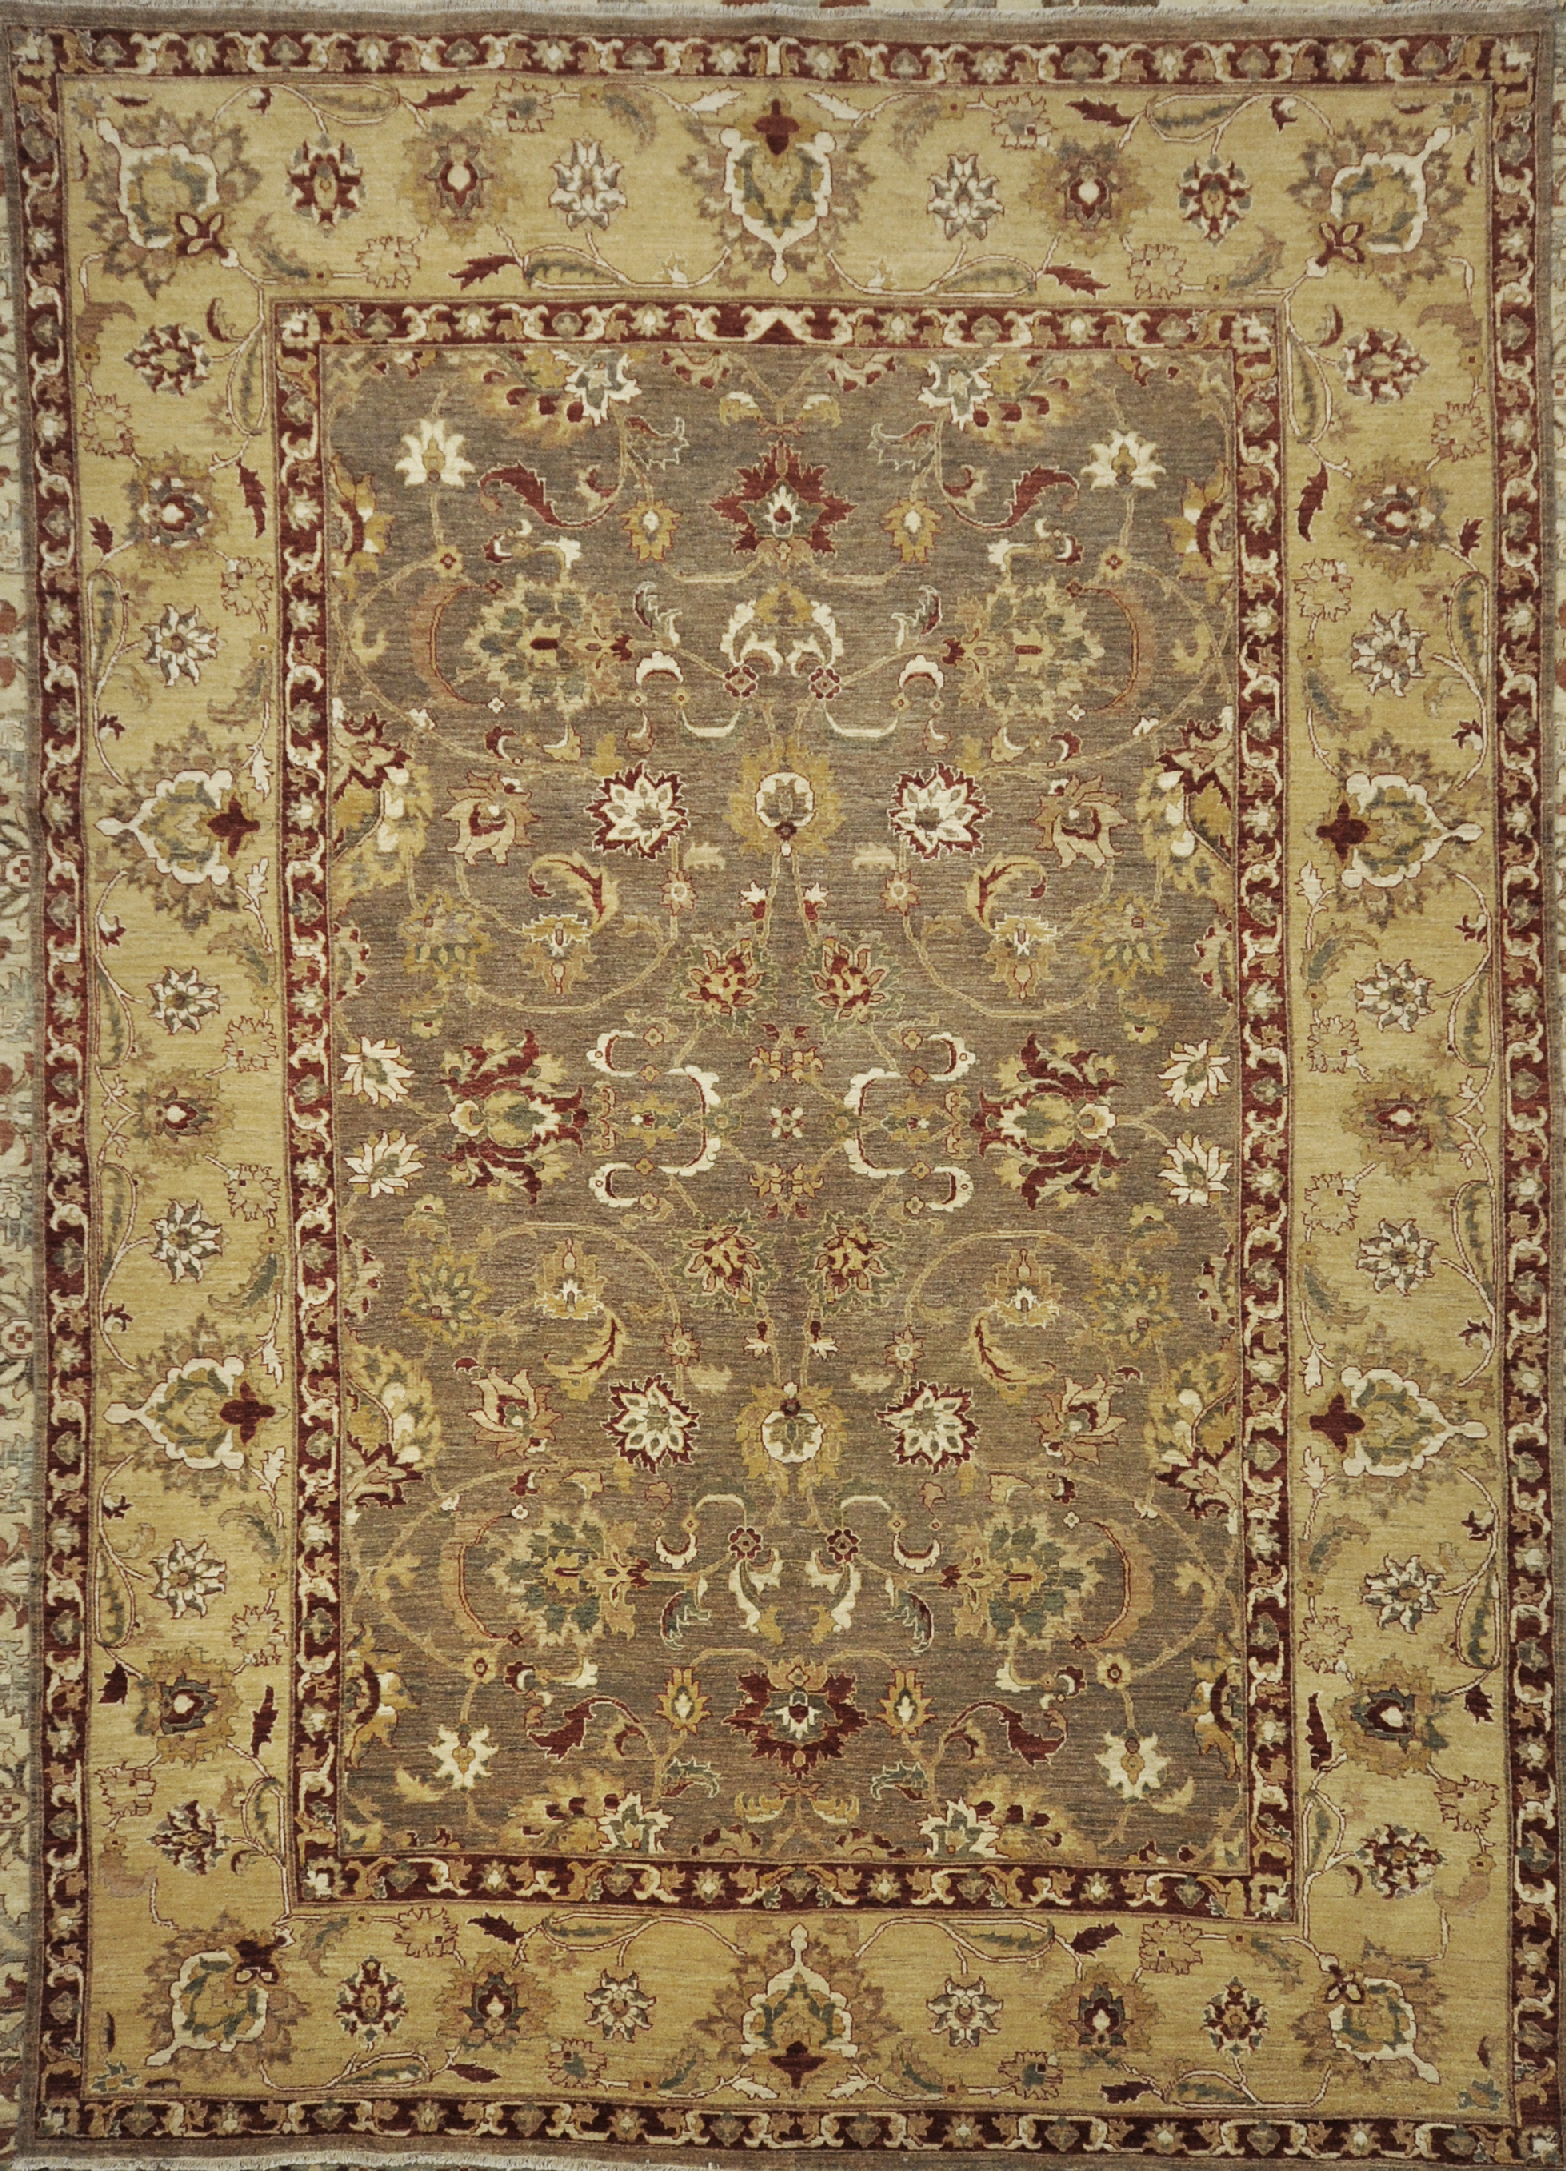 Finest Ziegler & Co. Usak Rugs and more oriental carpet 35495-